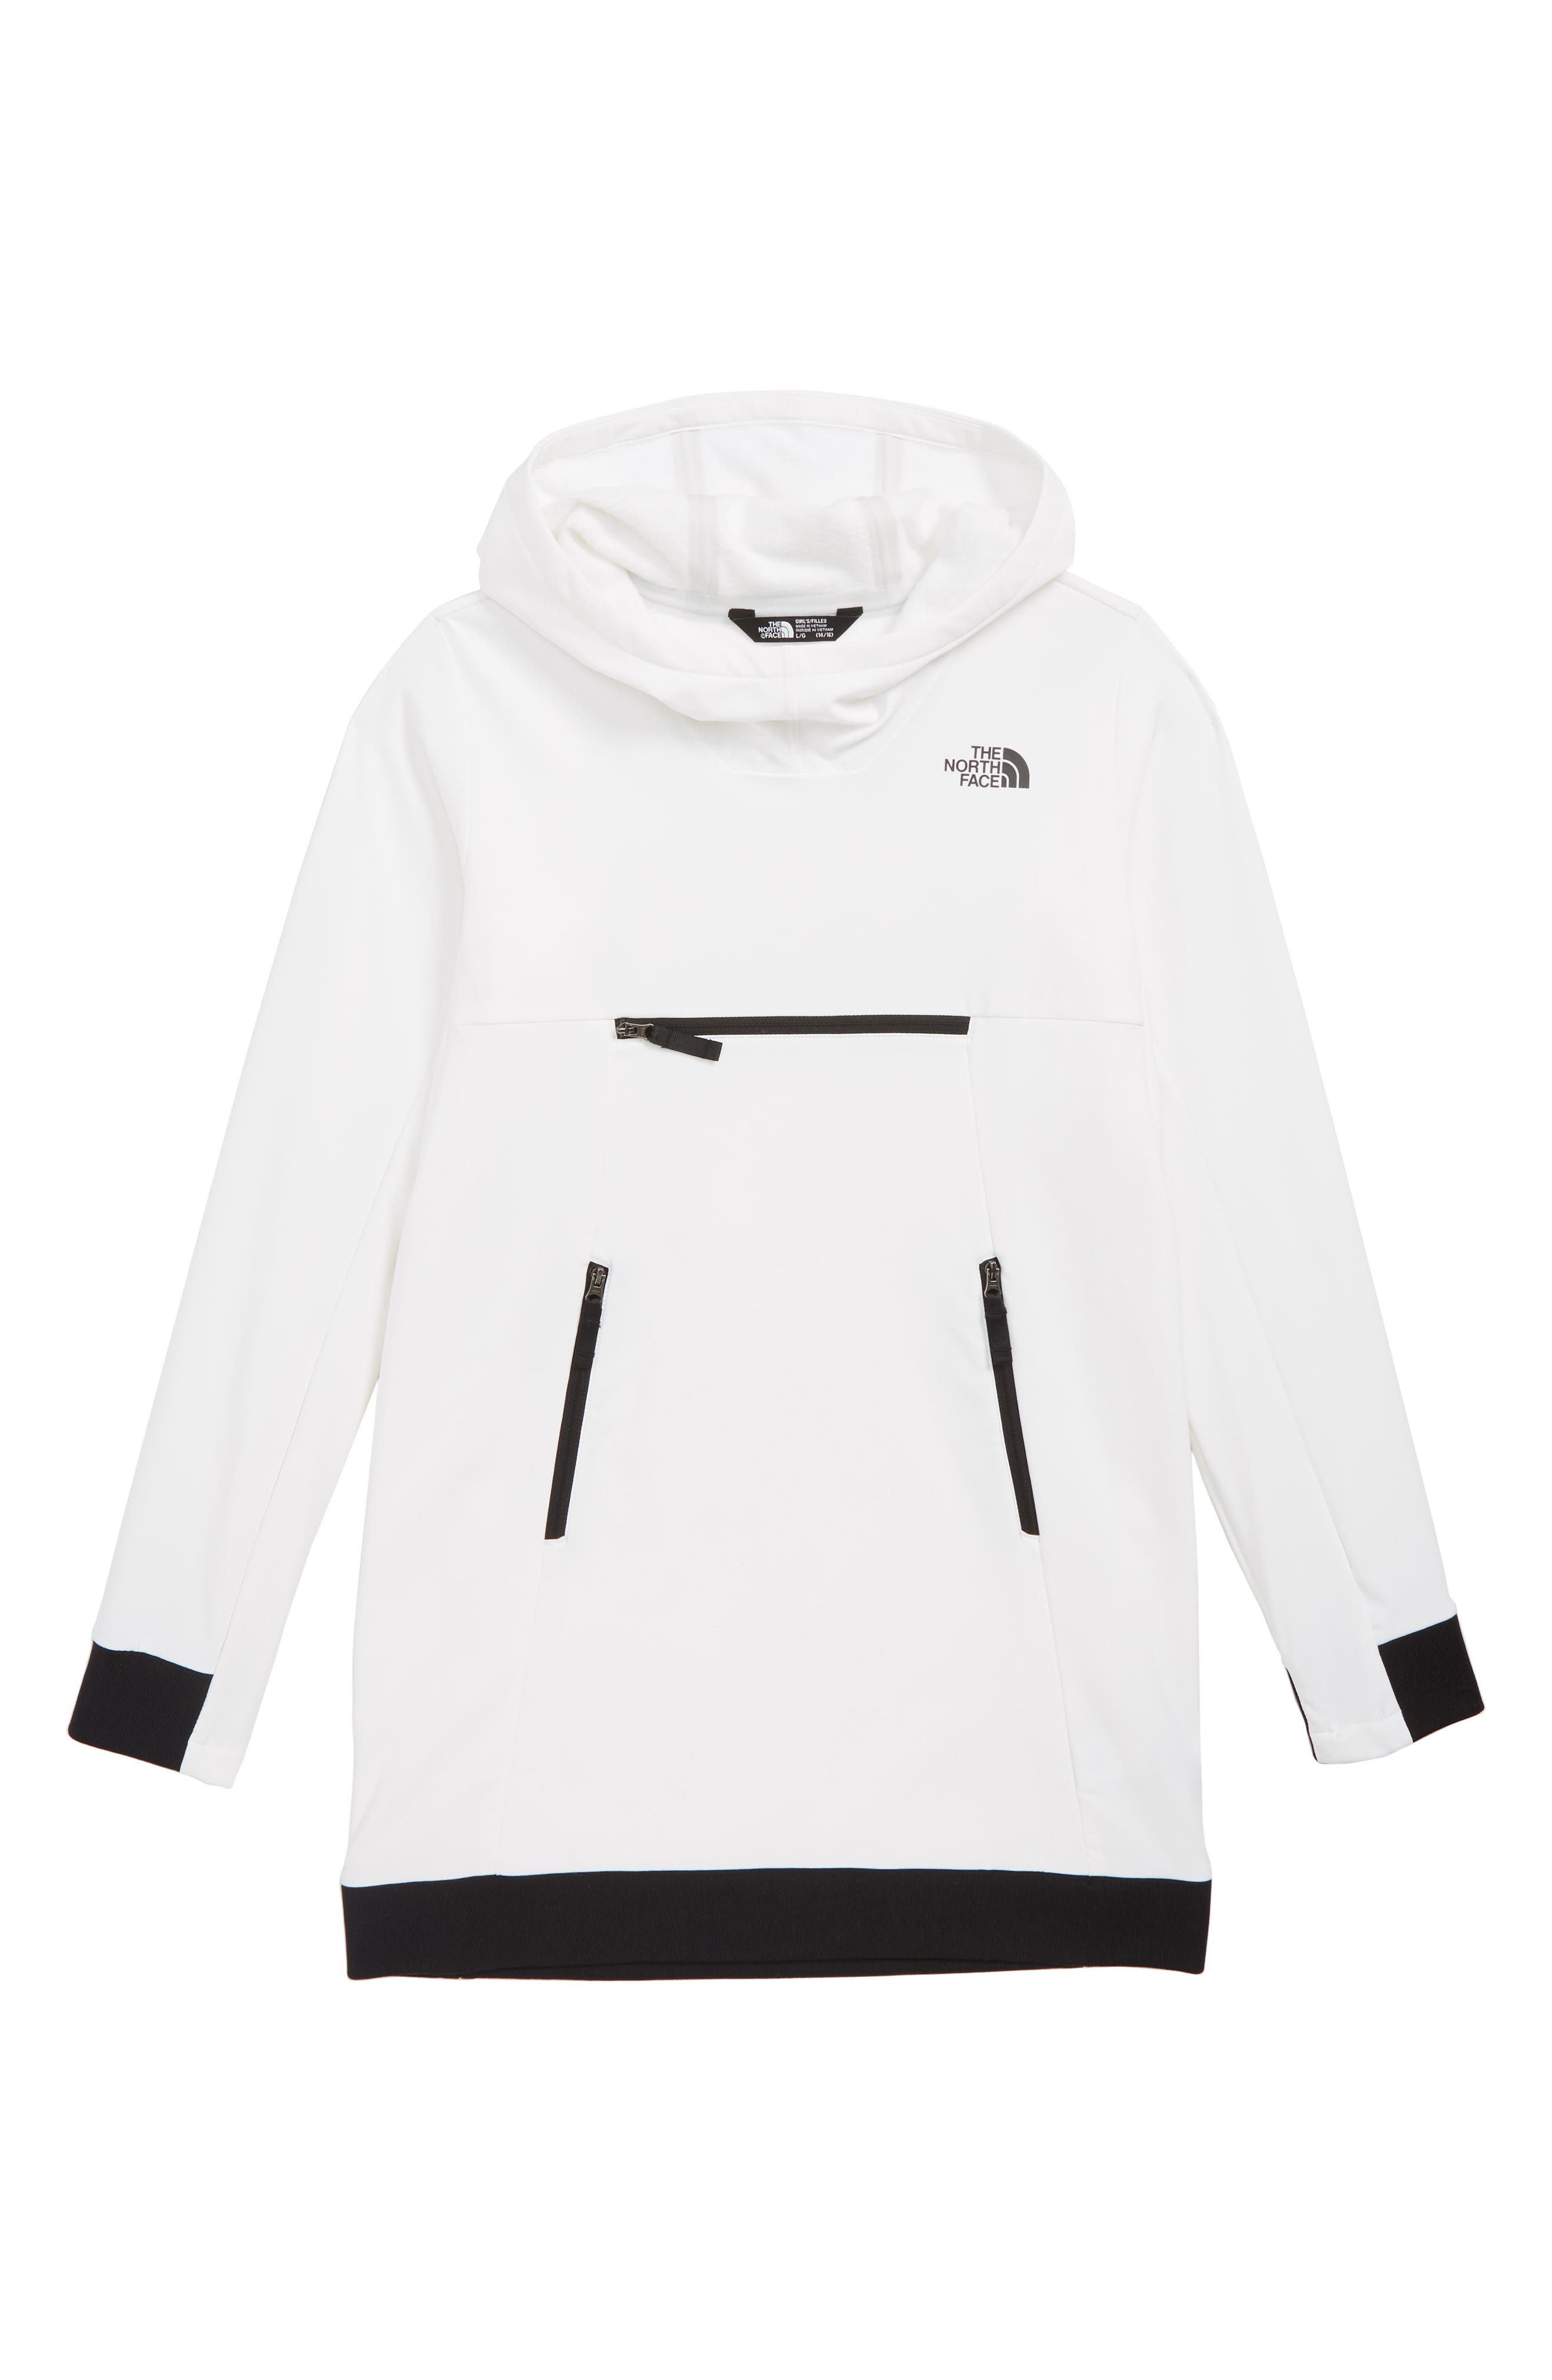 THE NORTH FACE, Tekno Pullover Hoodie, Main thumbnail 1, color, TNF WHITE